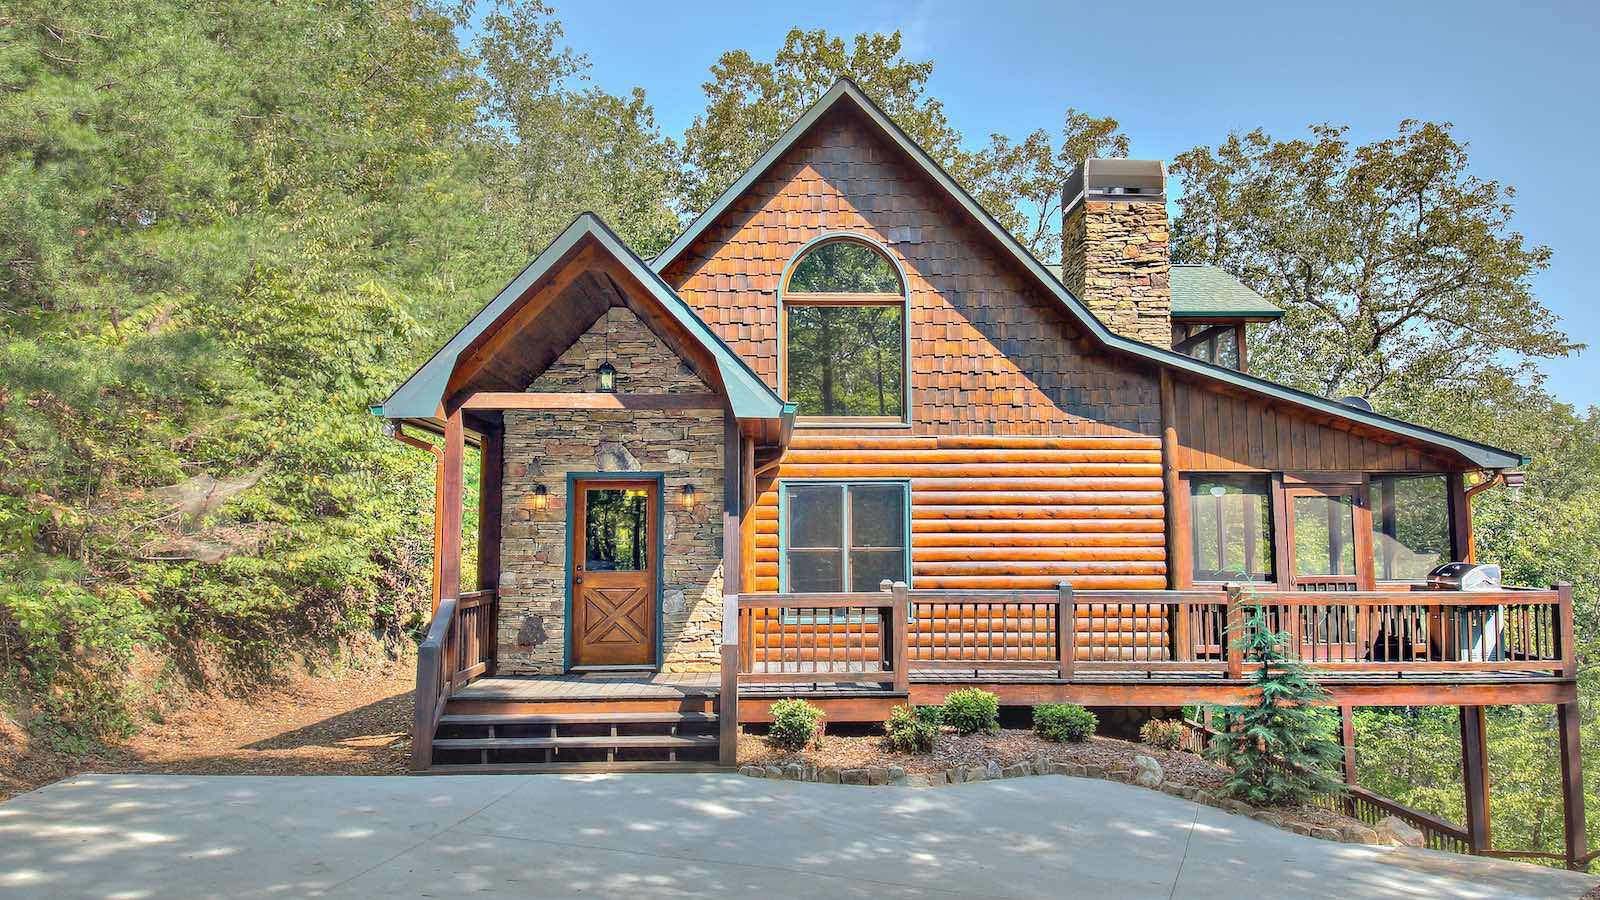 pin georgia rental chasing ar ridge dreams rentals ga pinterest cabins blue in house cabin